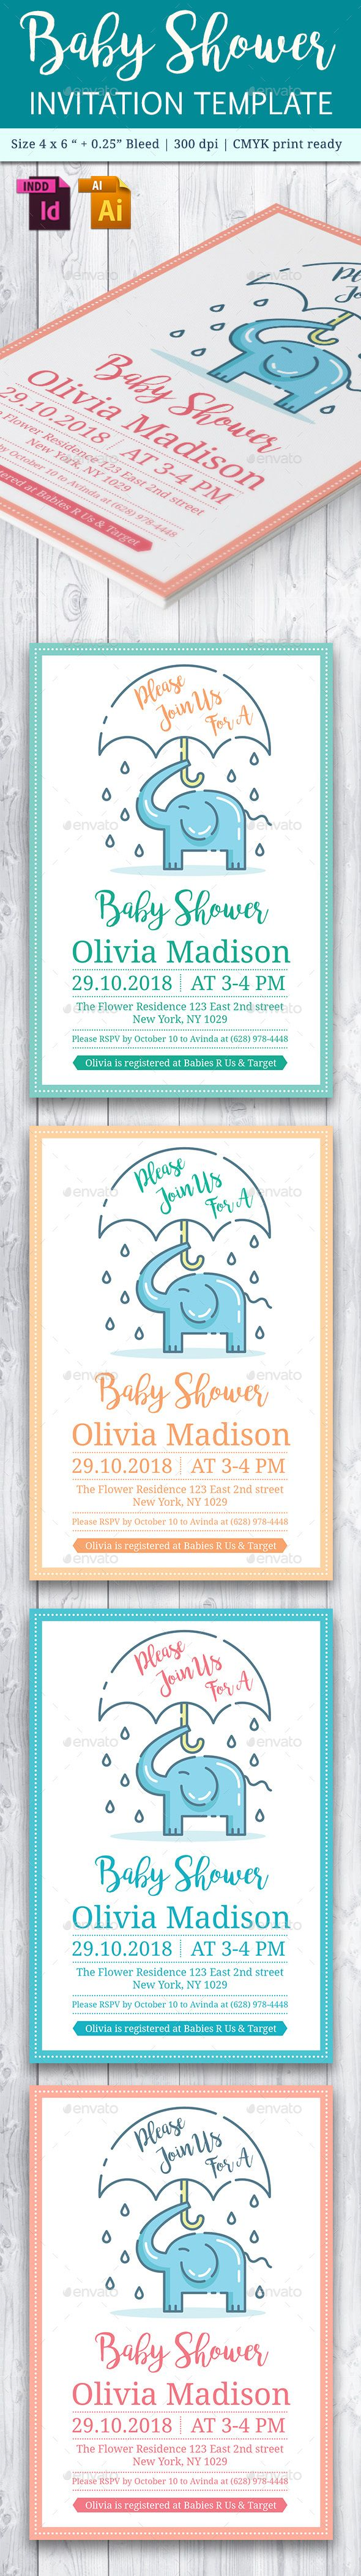 Baby Shower Template - Vol. 19 | Baby shower templates, Template and ...